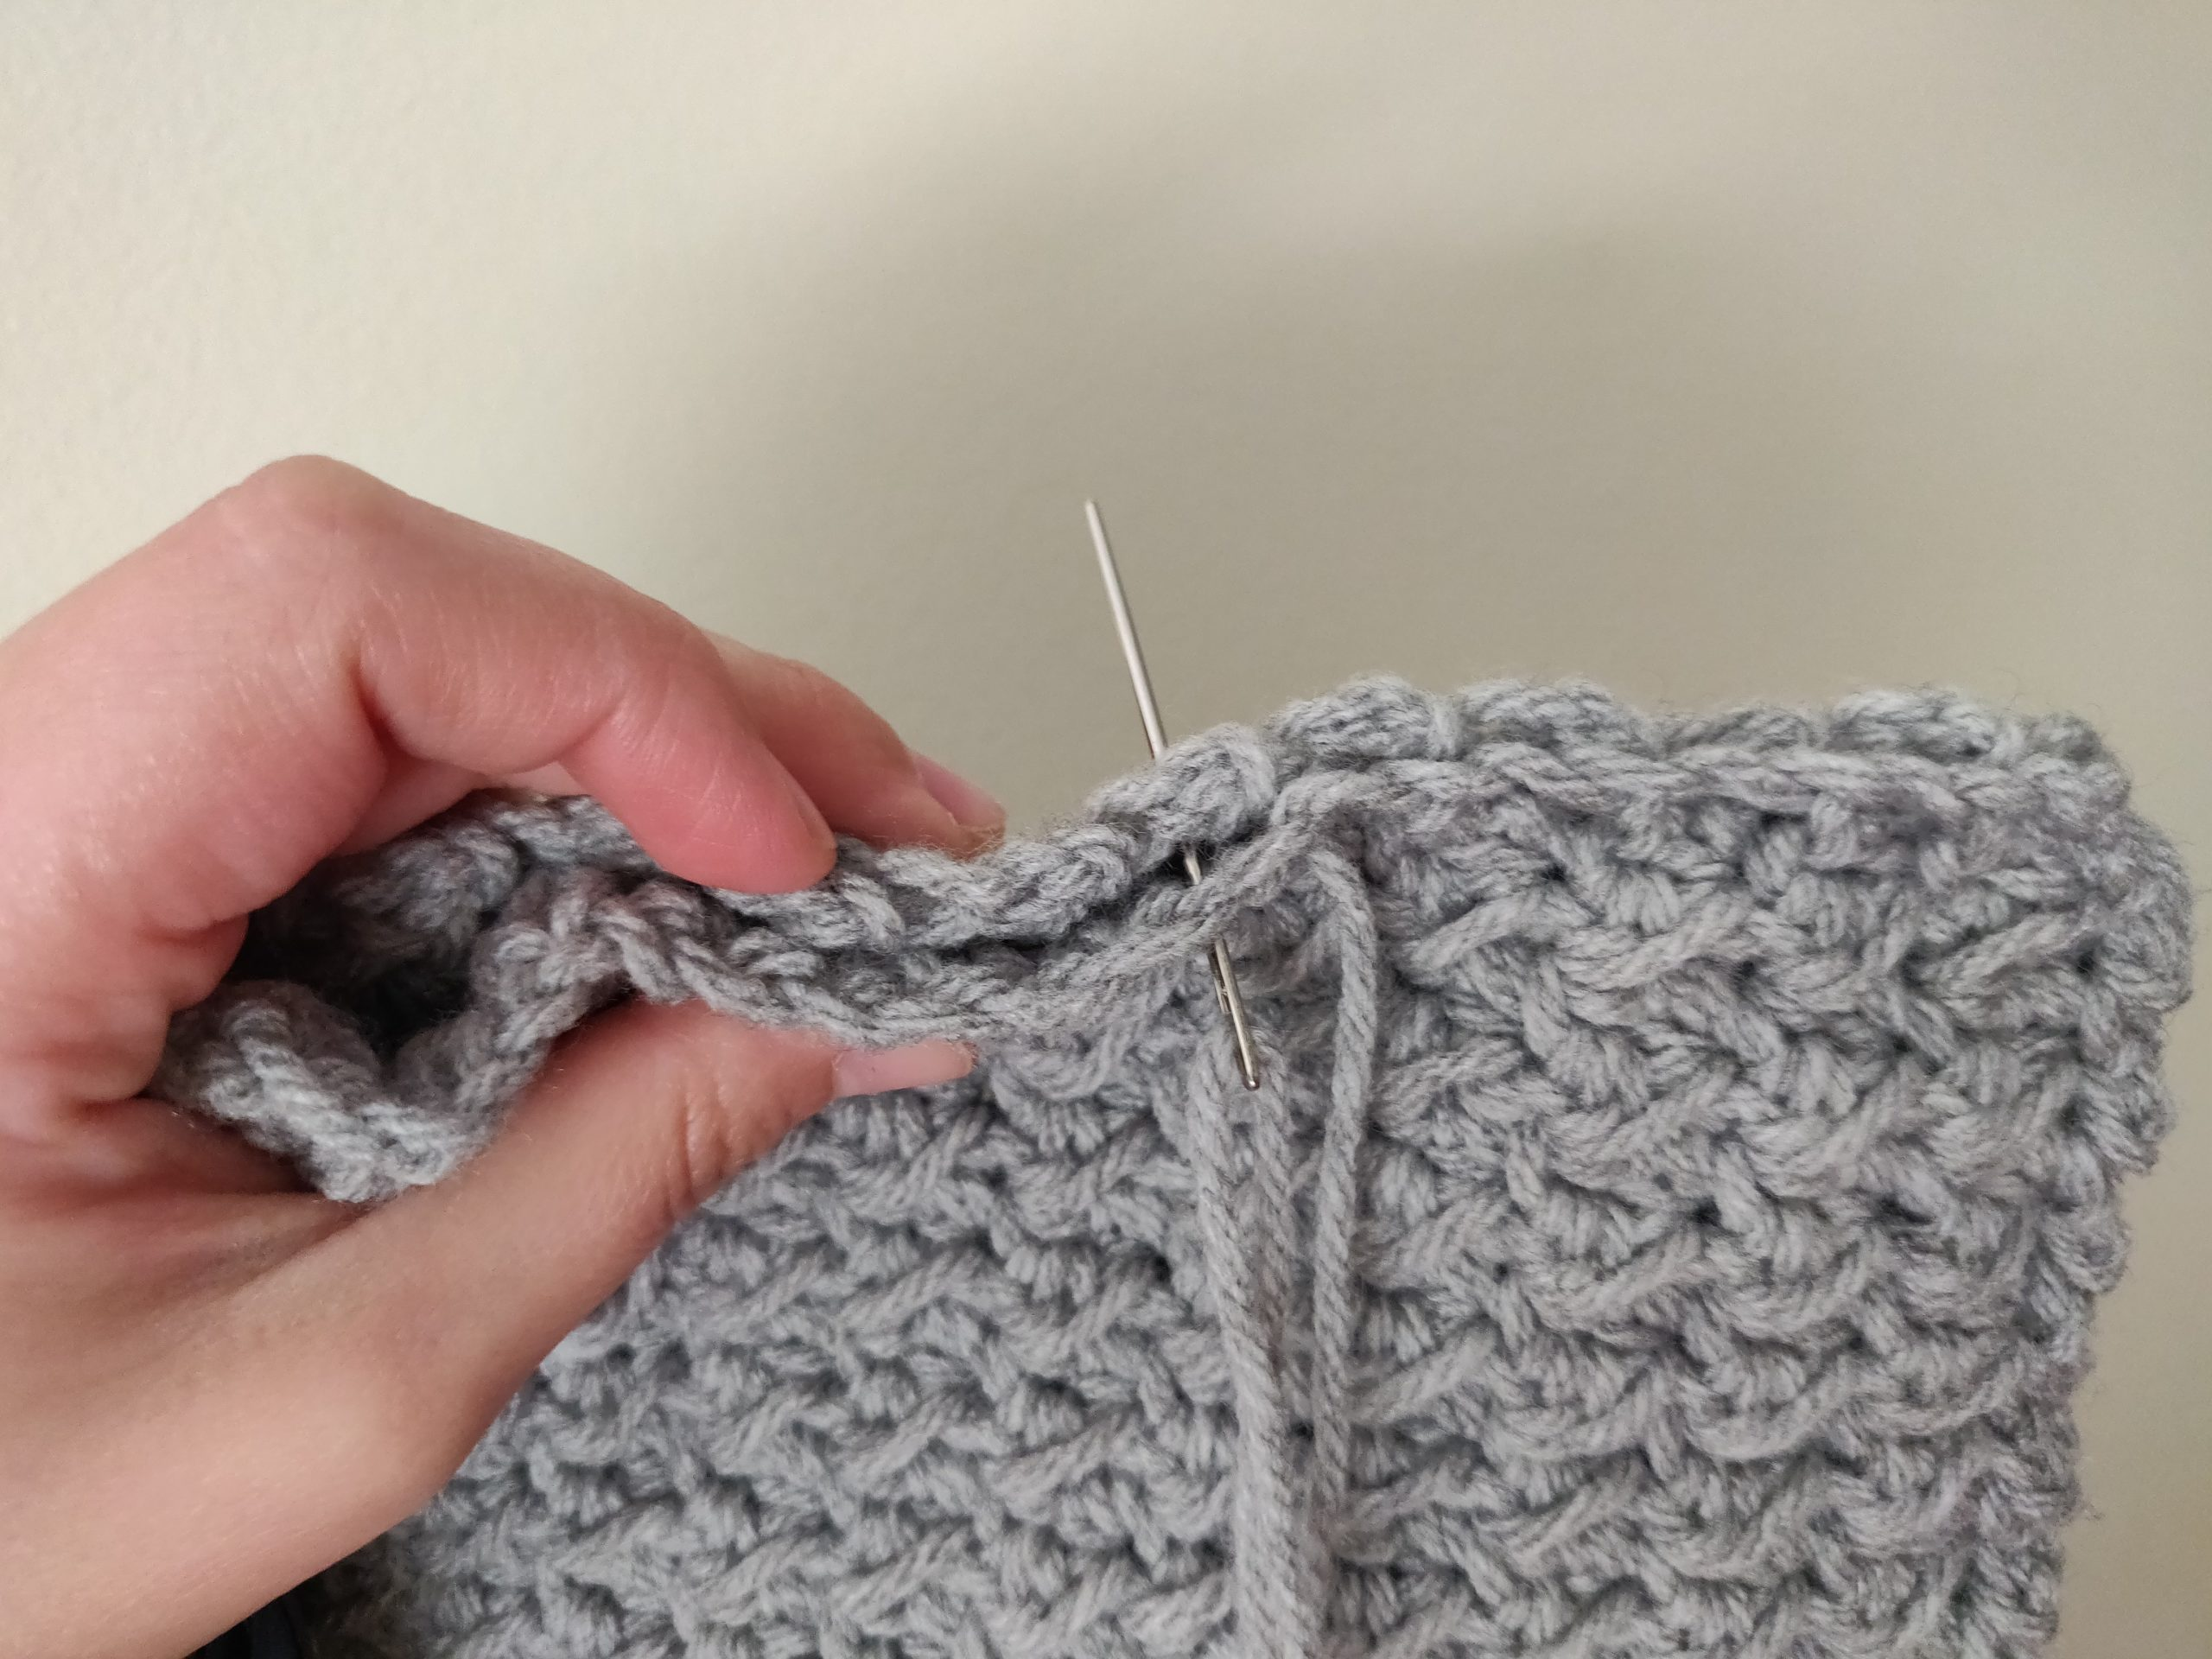 Sewing the edges of the scarf closed.